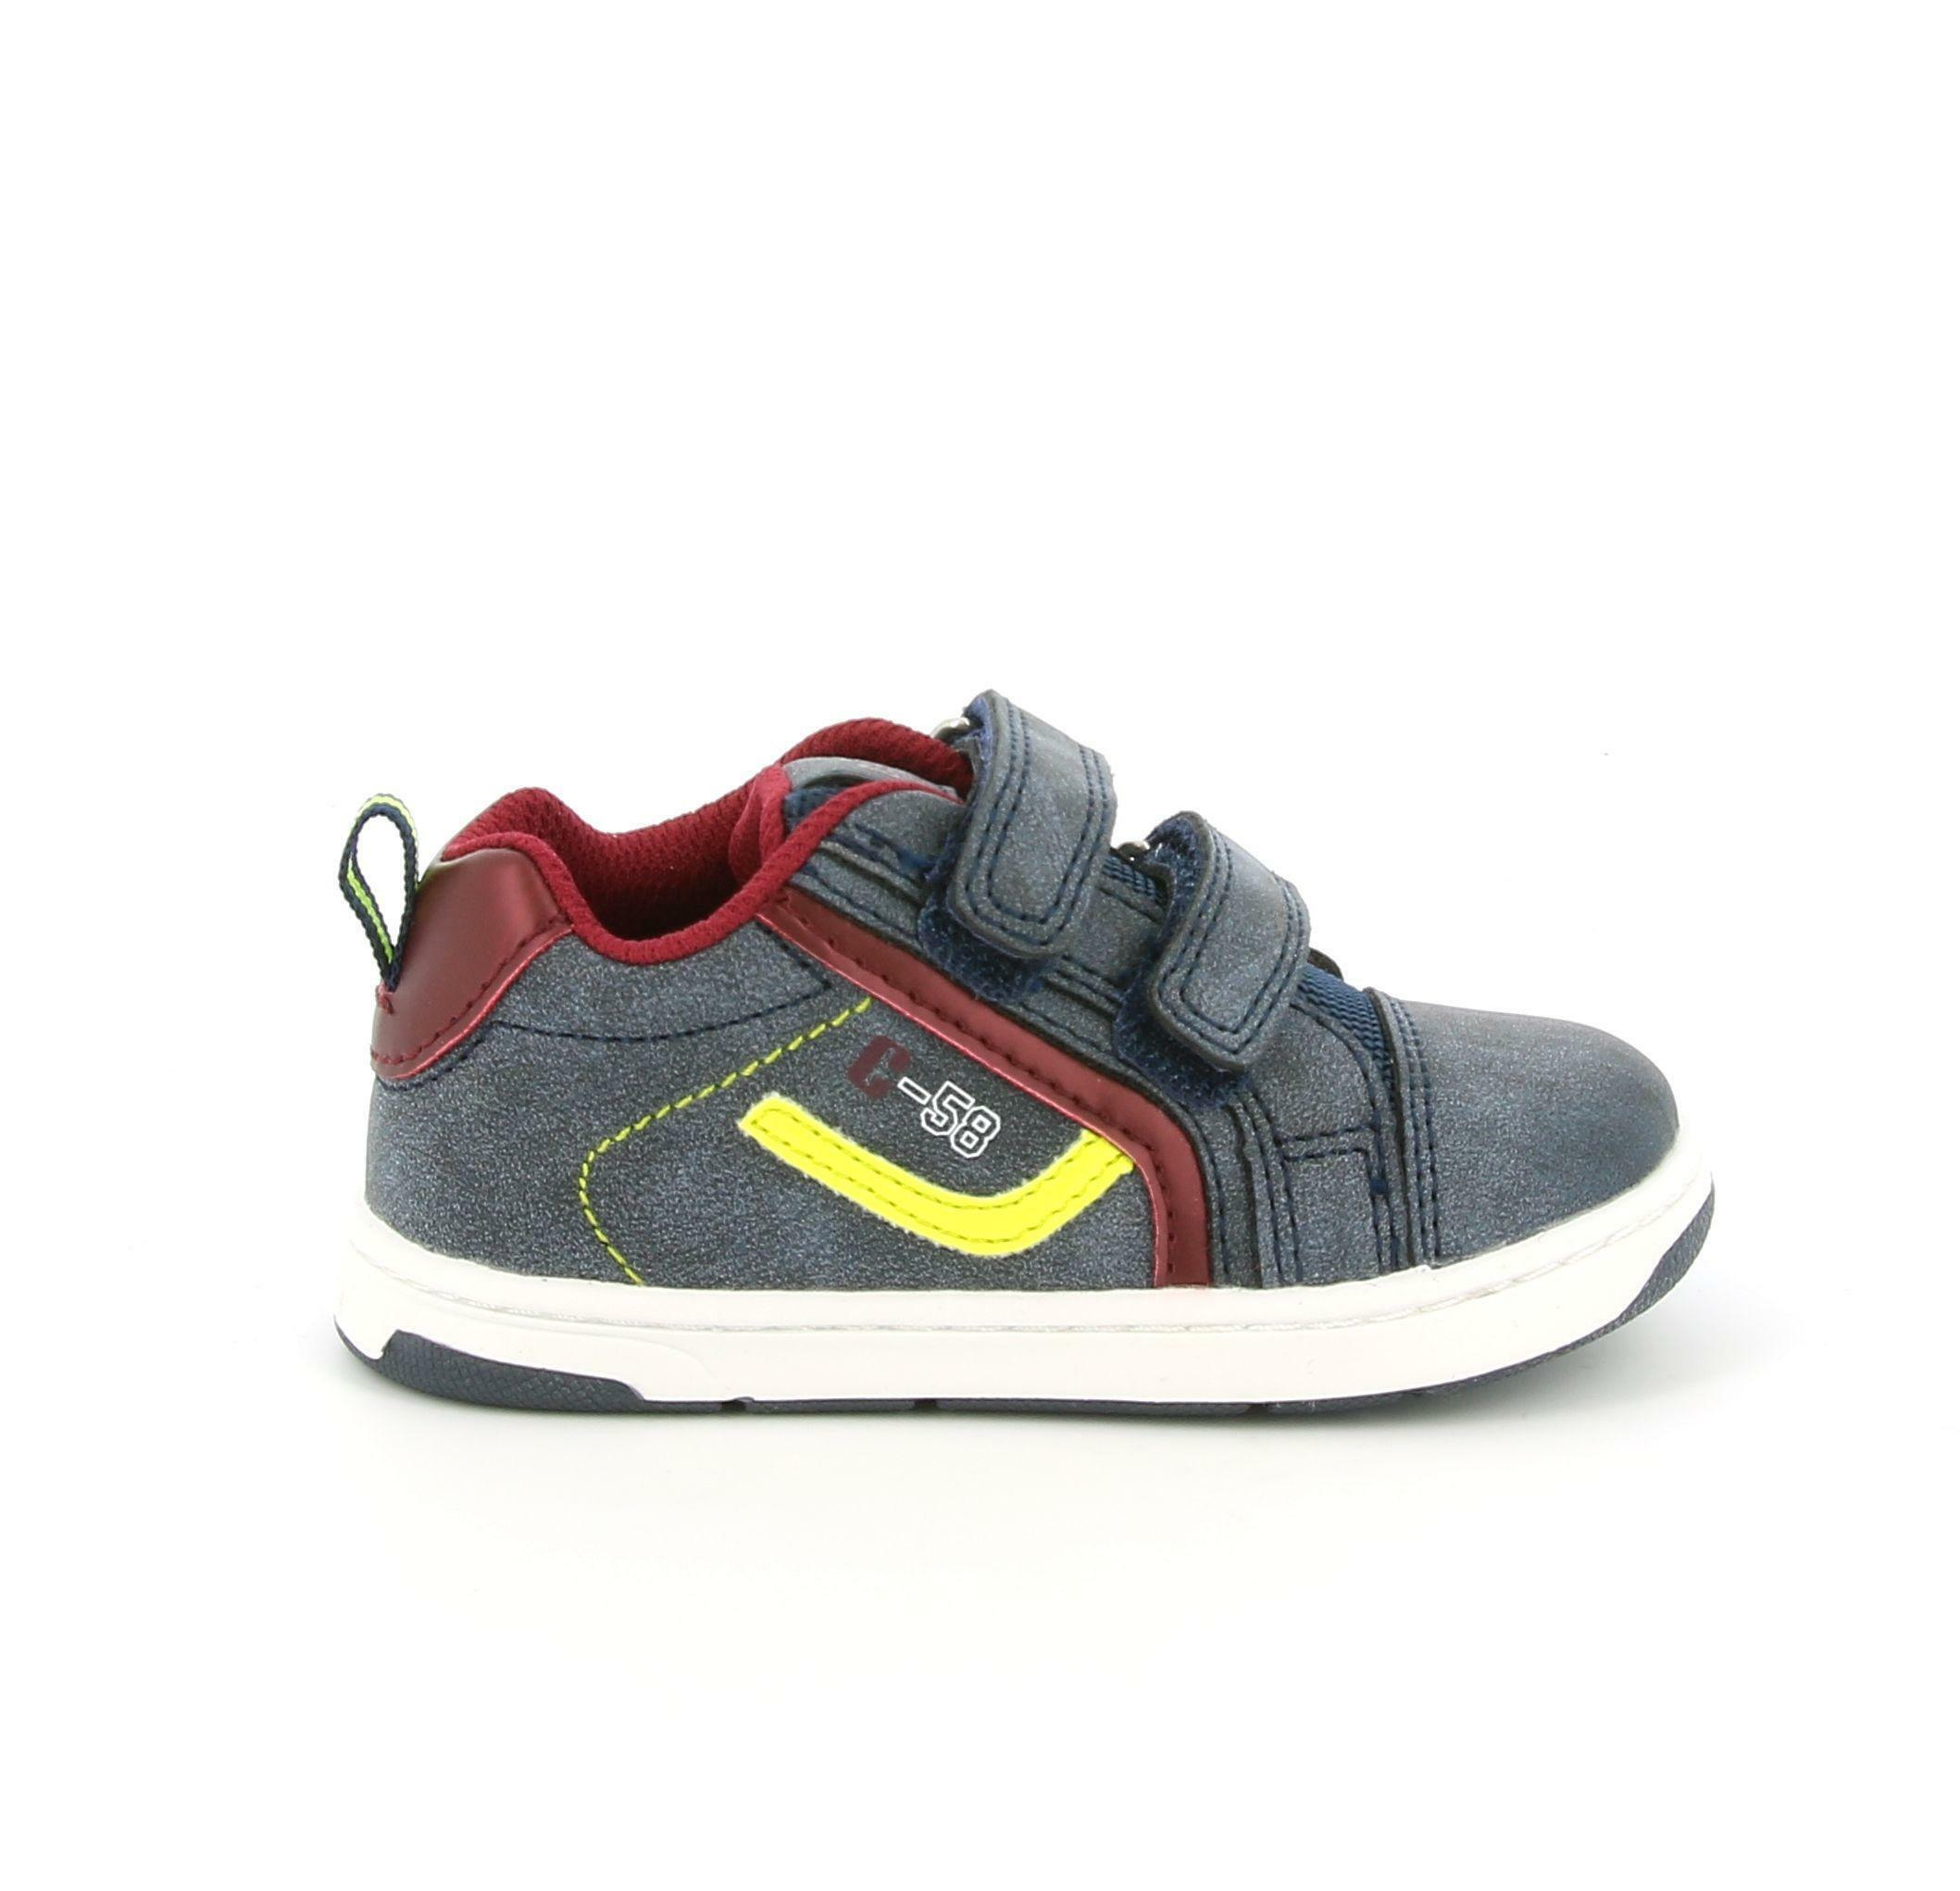 chicco chicco sneakers 64603 blu sneskers bambino